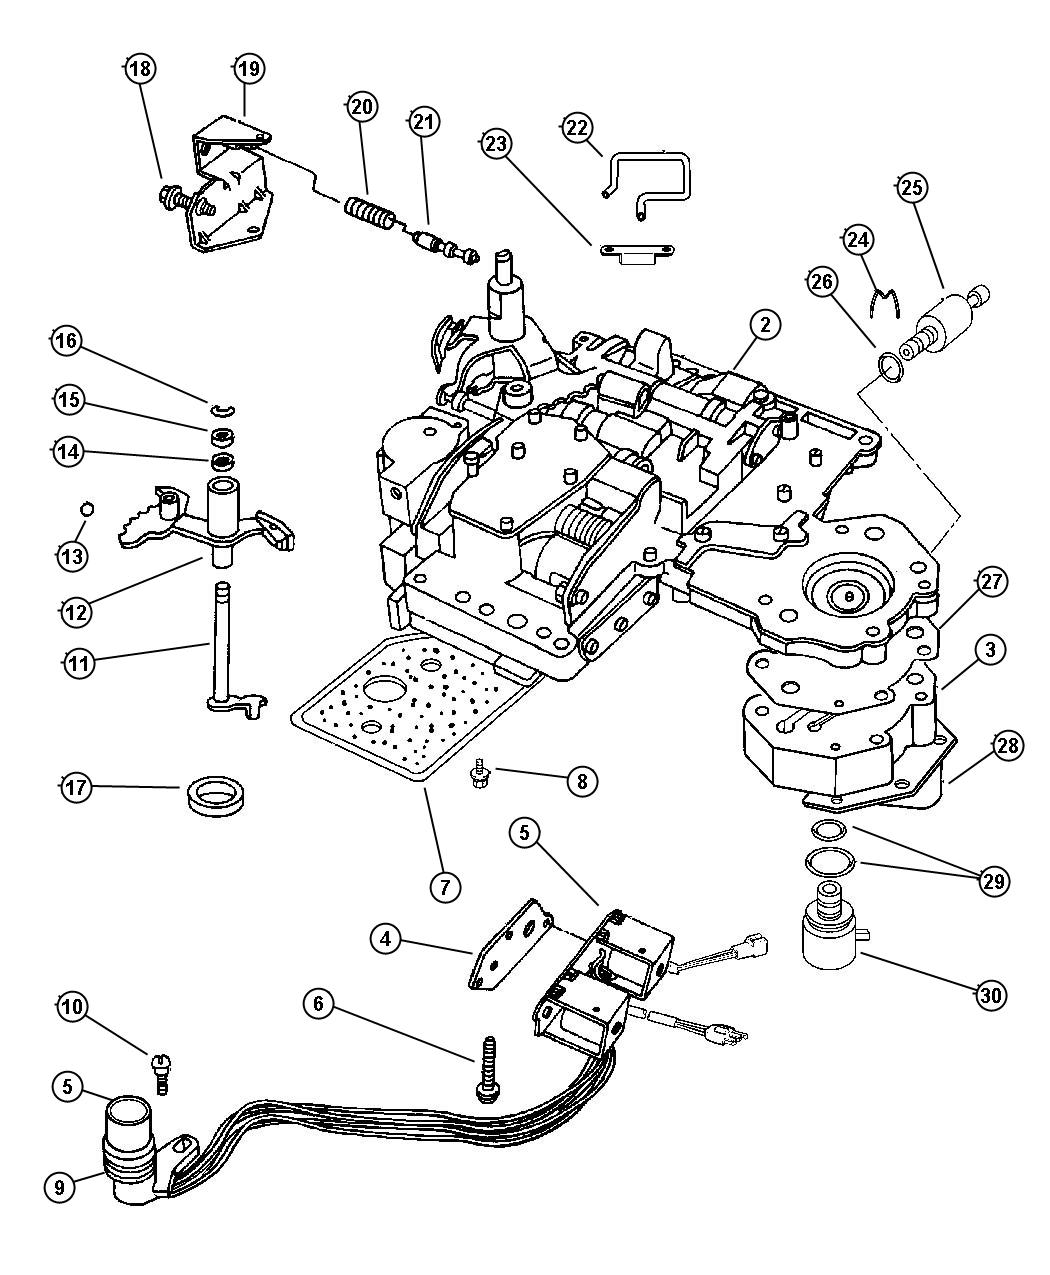 1979785 All I Want My Speed Control Work moreover 86 Dodge Distributor Wiring Diagram also 3kile 1995 Ram 1500 New Fuel Pump New Pressure Regulator together with 95 Dodge Stratus Engine Diagram Get Free Image About together with 1718634 Fuel Leak Video. on 1995 ram 2500 wiring diagram